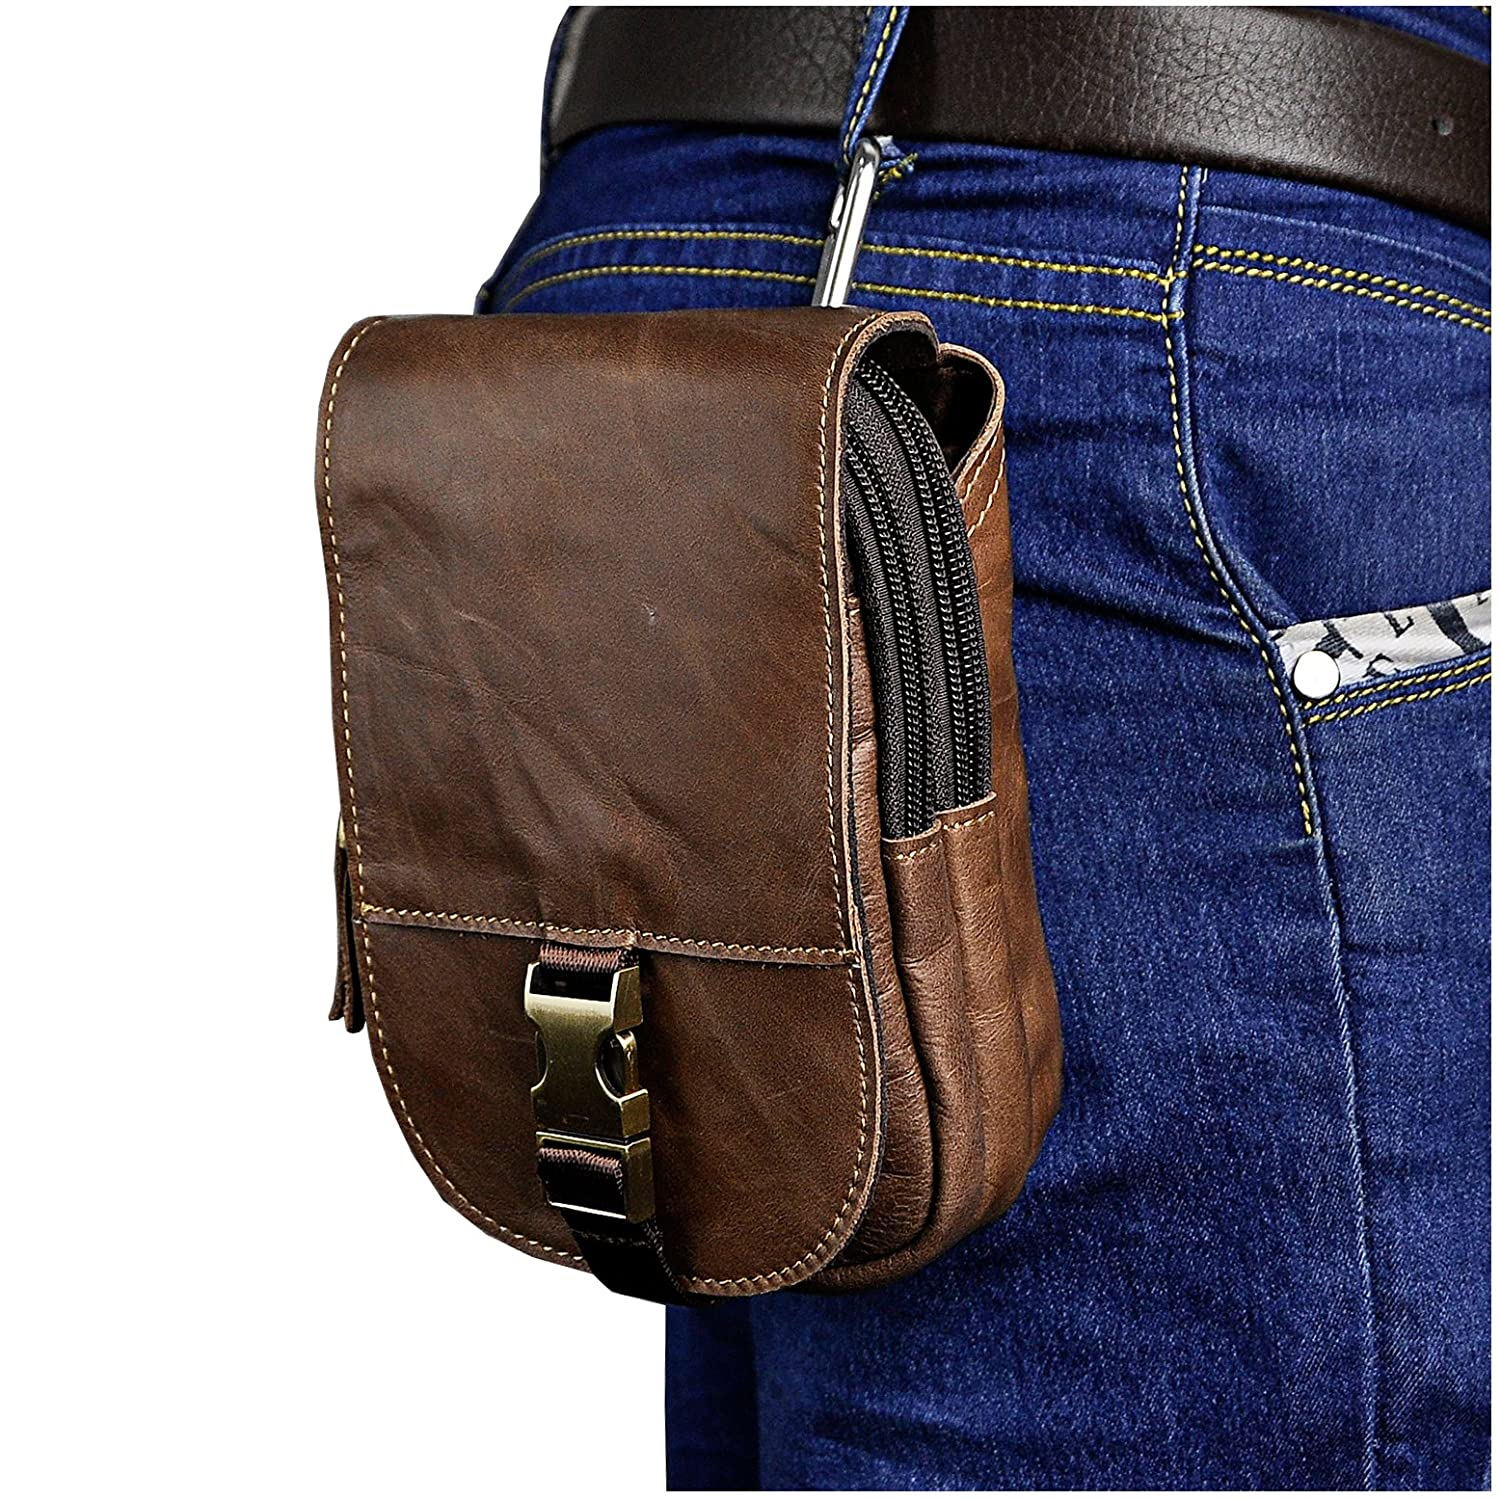 Le'aokuu Mens Genuine Leather Hook Fanny Waist Pack Small Messenger Bag Phone Case Pouch (The Black) 8301